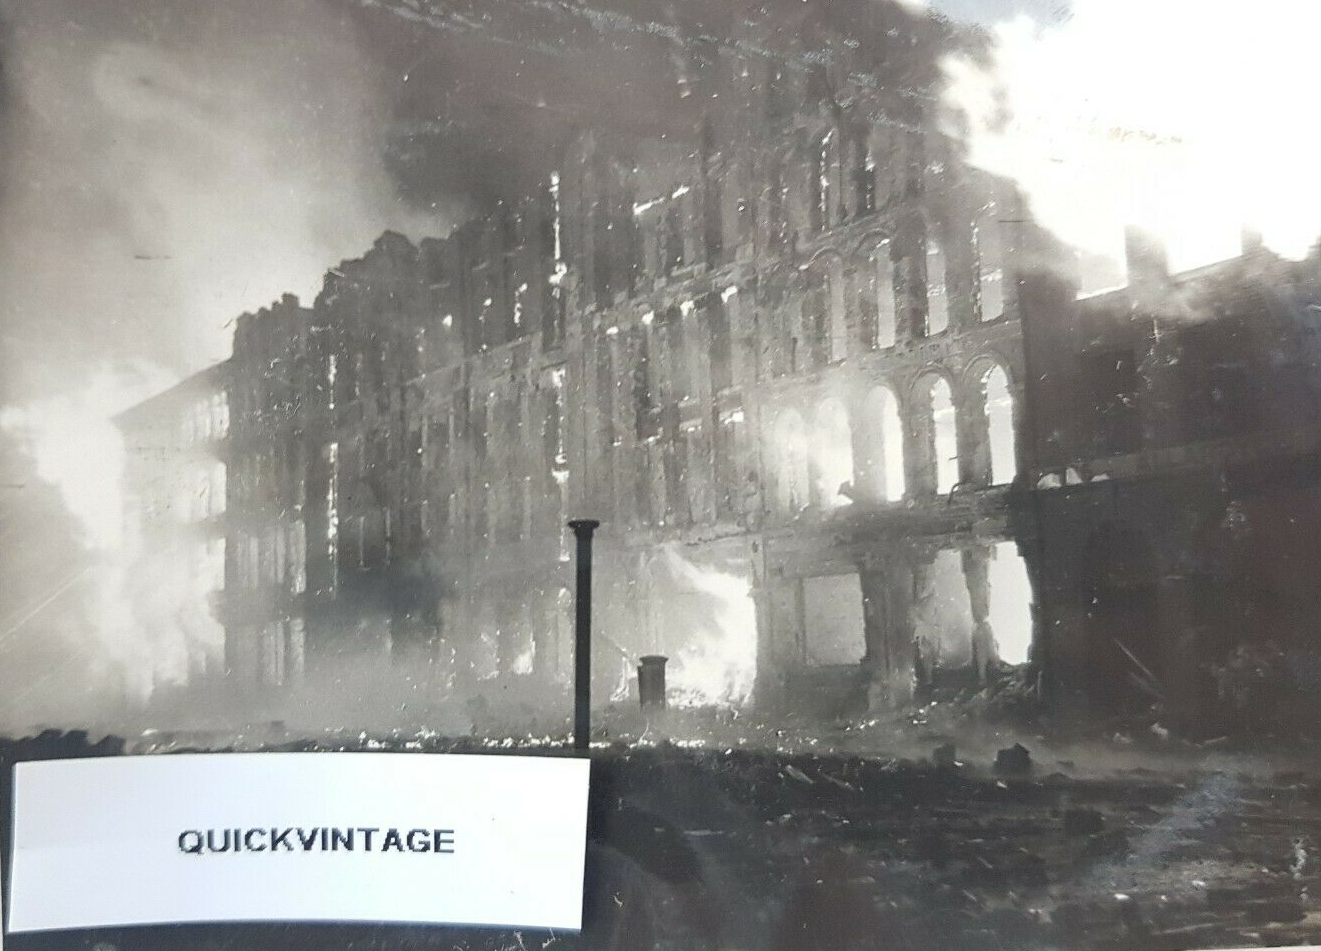 Southwark Street on fire. London Blitz, Dec 1940, WW2.  X.png